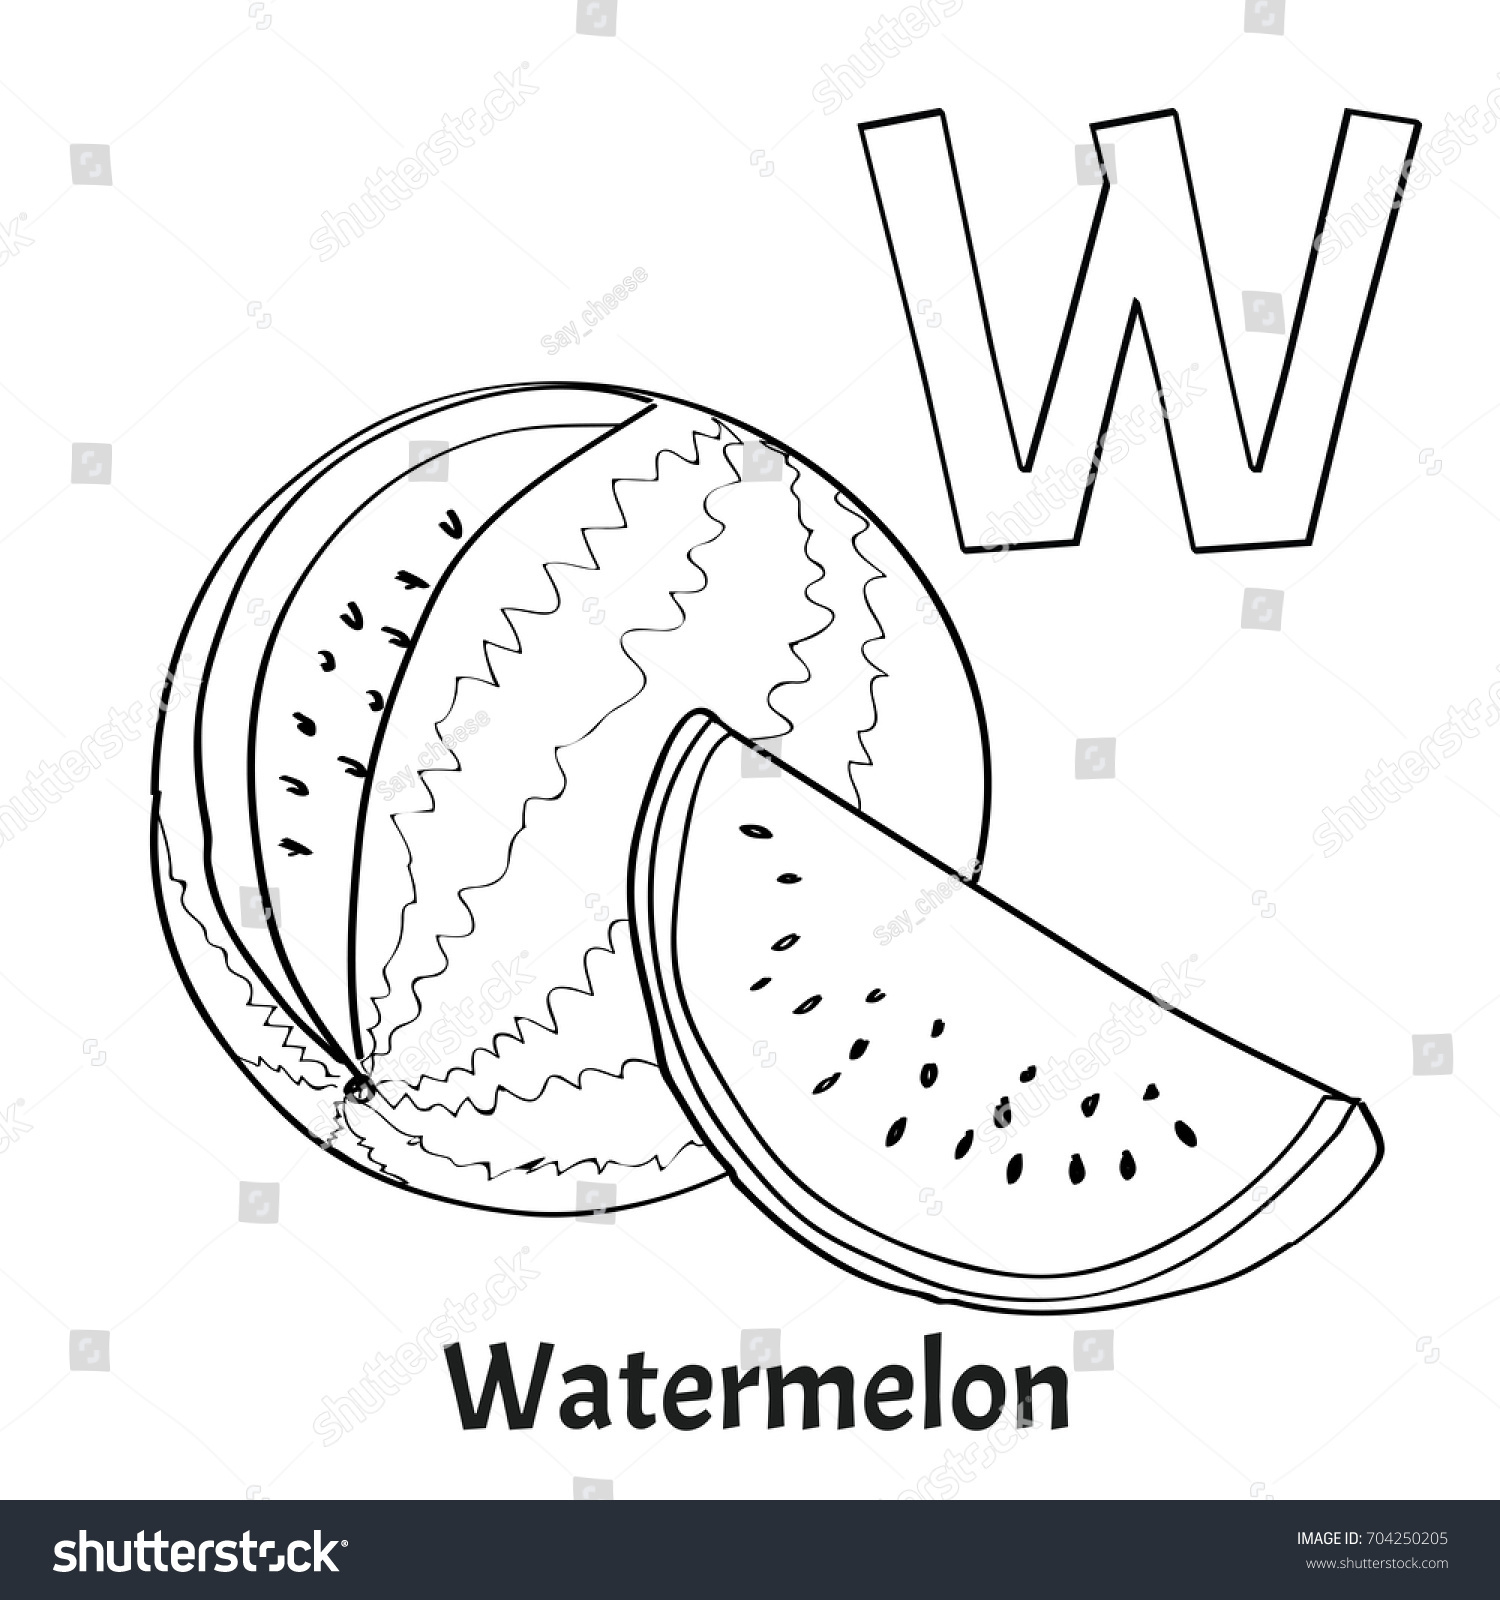 Free letter w coloring page - Alphabet Letter W Coloring Page Watermelon